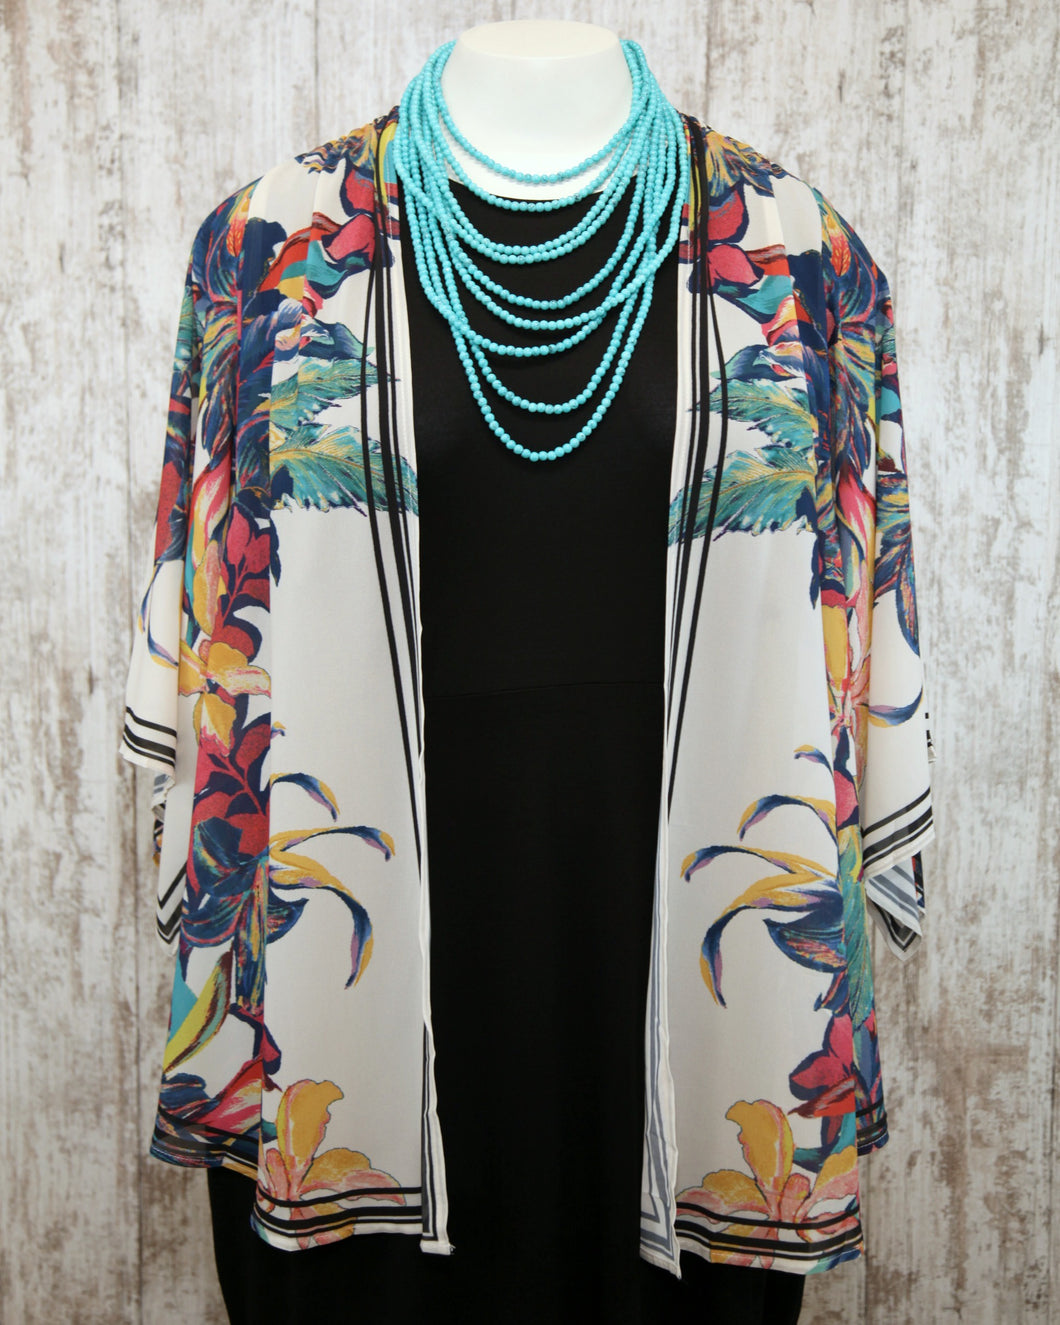 PLUS Draped Cover Up w Kimono Slvs and Floral Print